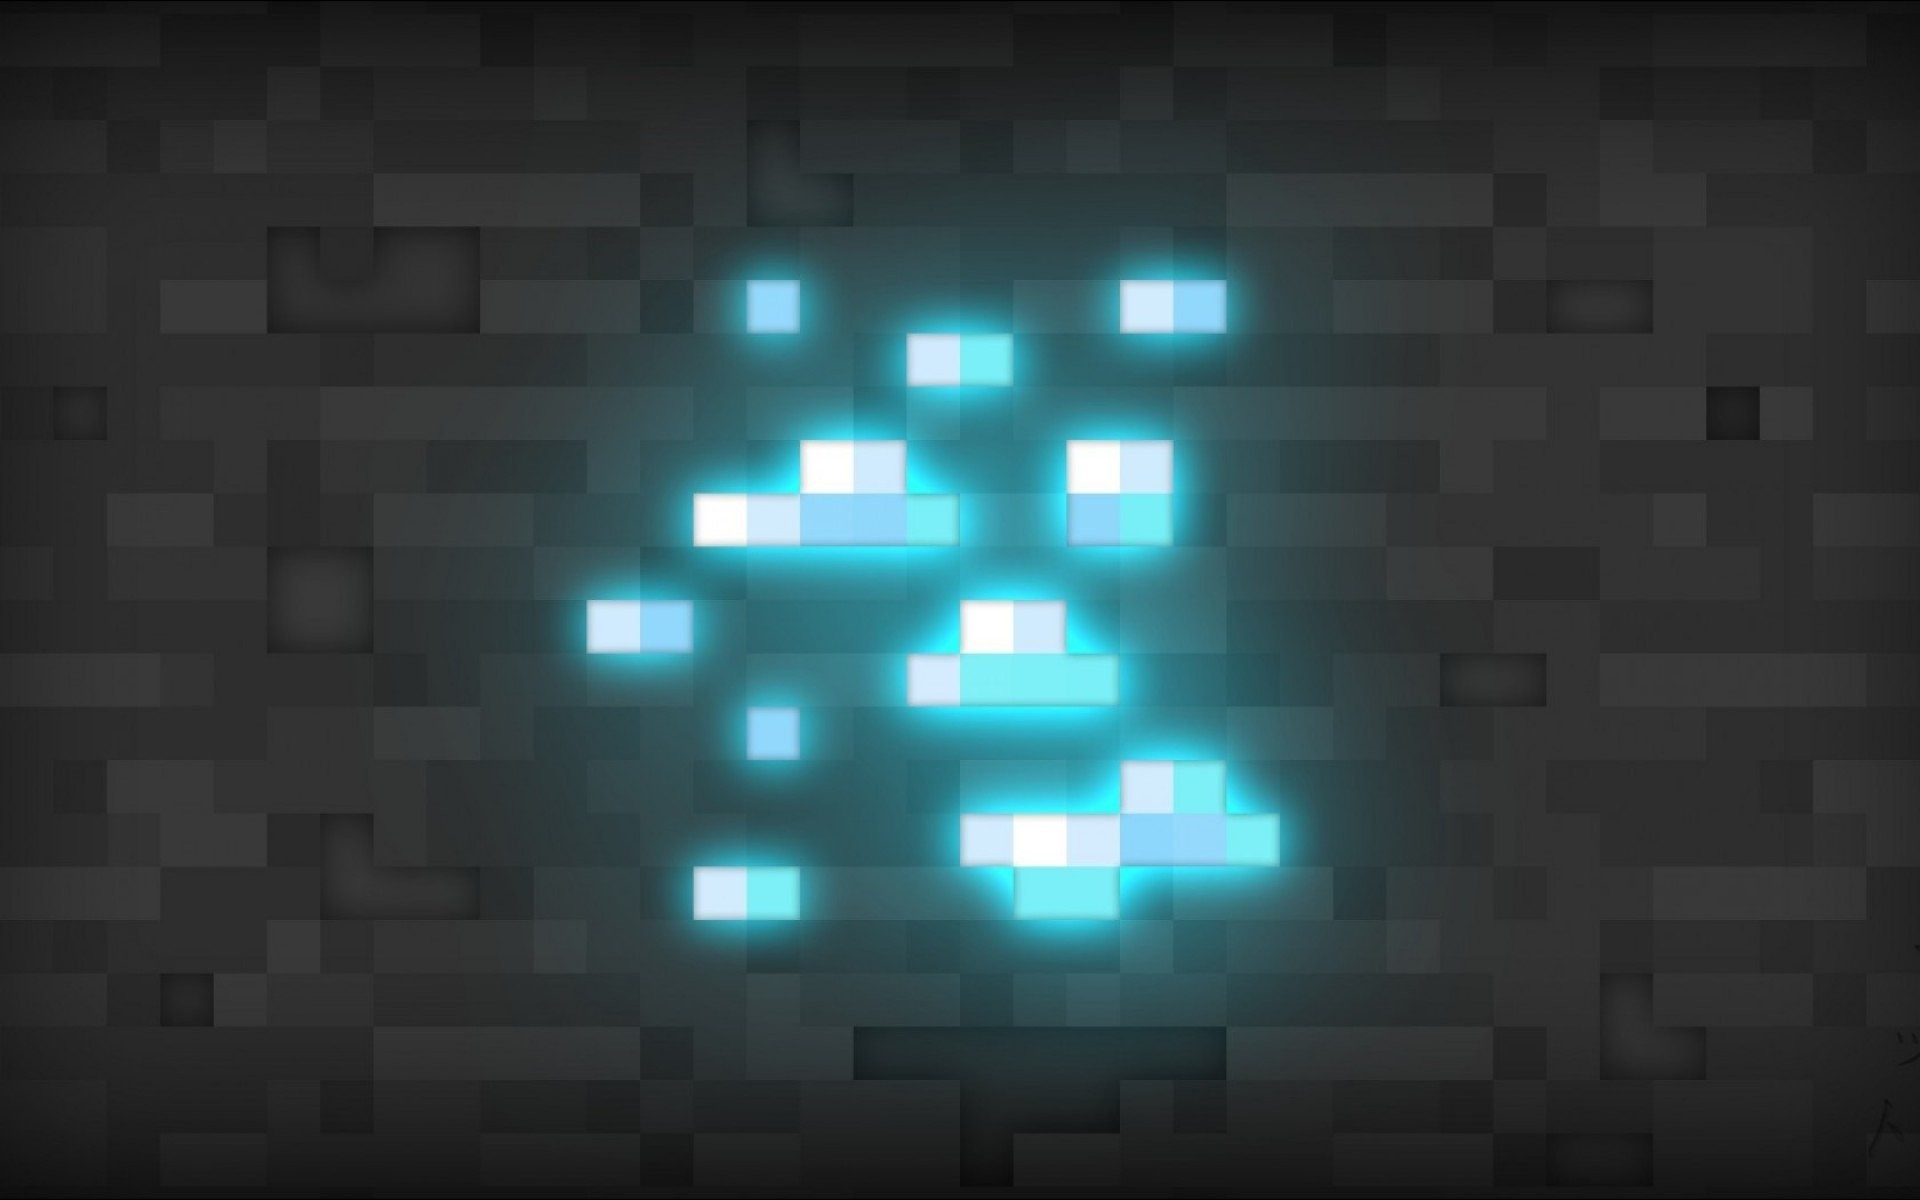 Res: 1920x1200, Minecraft Diamond Wallpapers Hd Resolution On Wallpaper Hd 1920 x 1200 px  692.31 KB mobs creeper